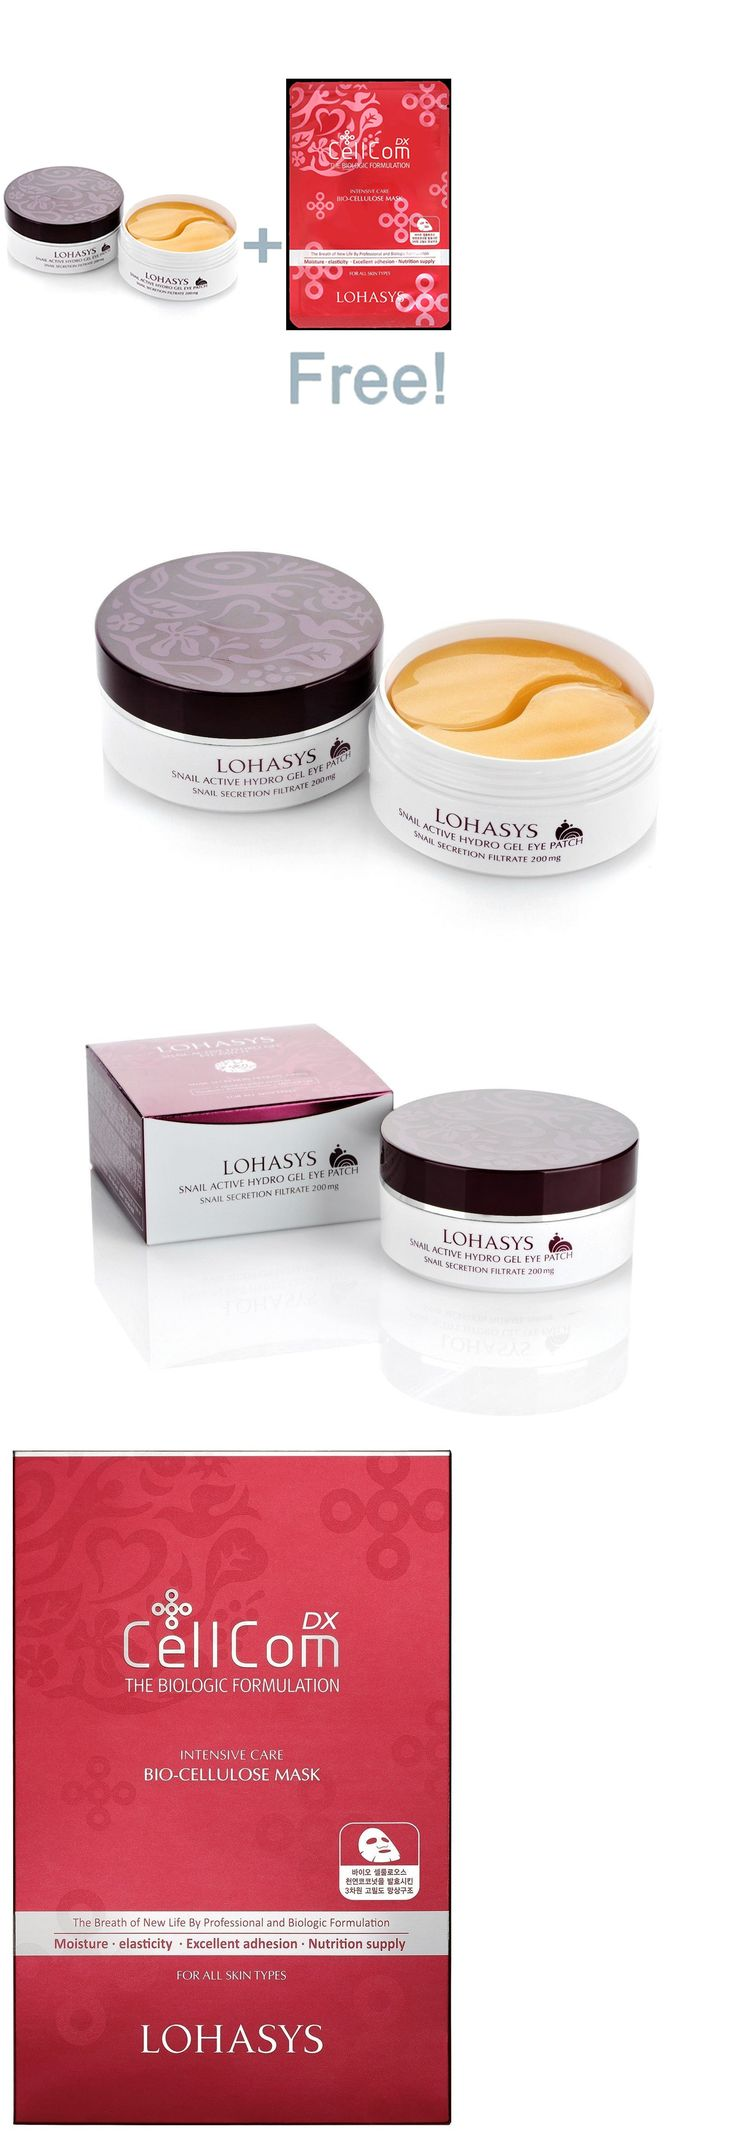 Eyepatches and Eyeglass Patches: Lohasys Snail Active Hydro Gel Eye Patch 100G + Cellcomdx Intensive Mask 25G BUY IT NOW ONLY: $43.31